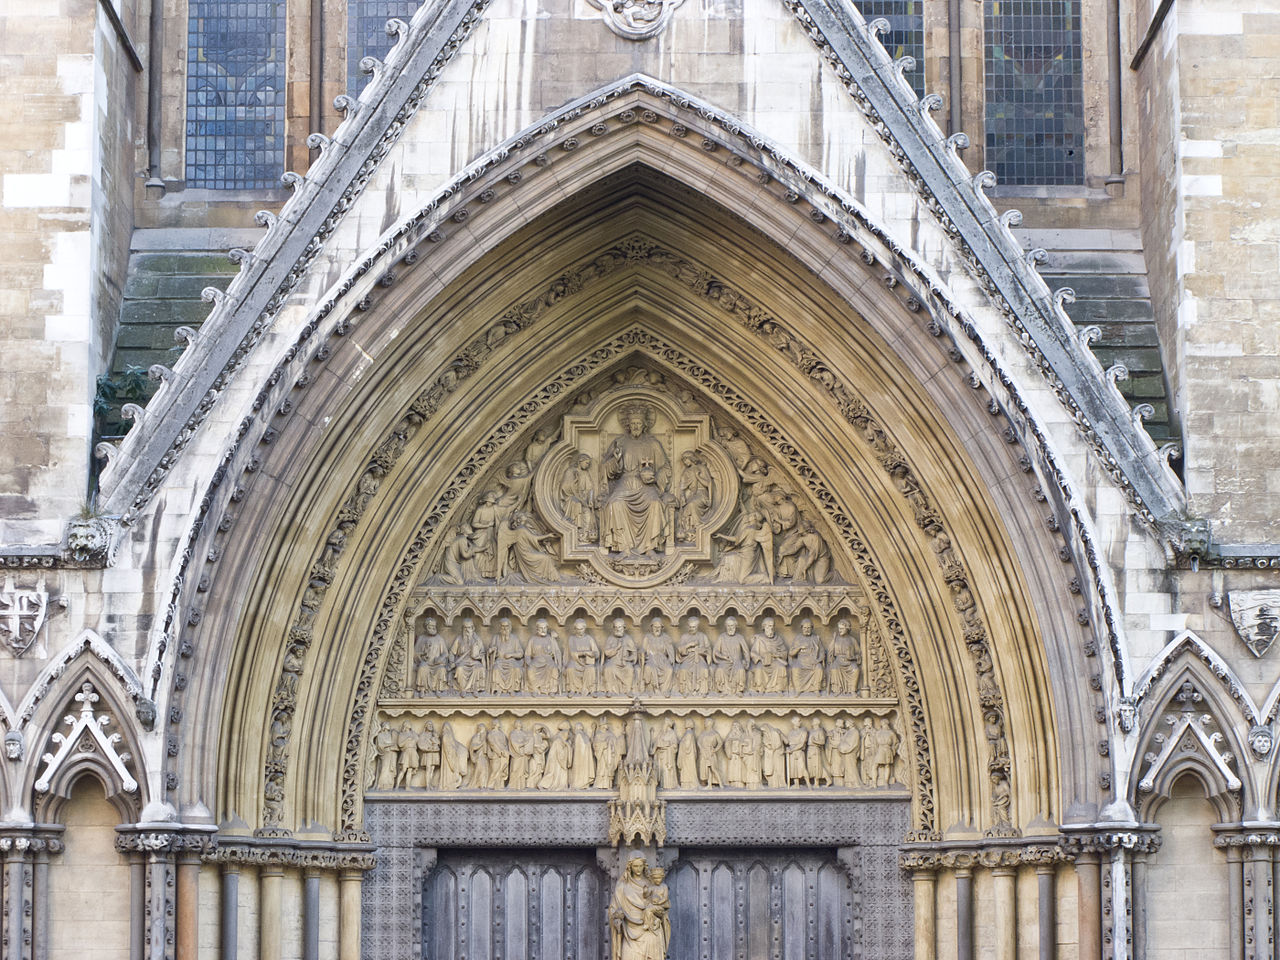 city of london and westminster abbey 1 the current city of westminster was created in 1965 before that it was the metropolitan borough of westminster and had city status 2 the city of london and city of westminster were separated.